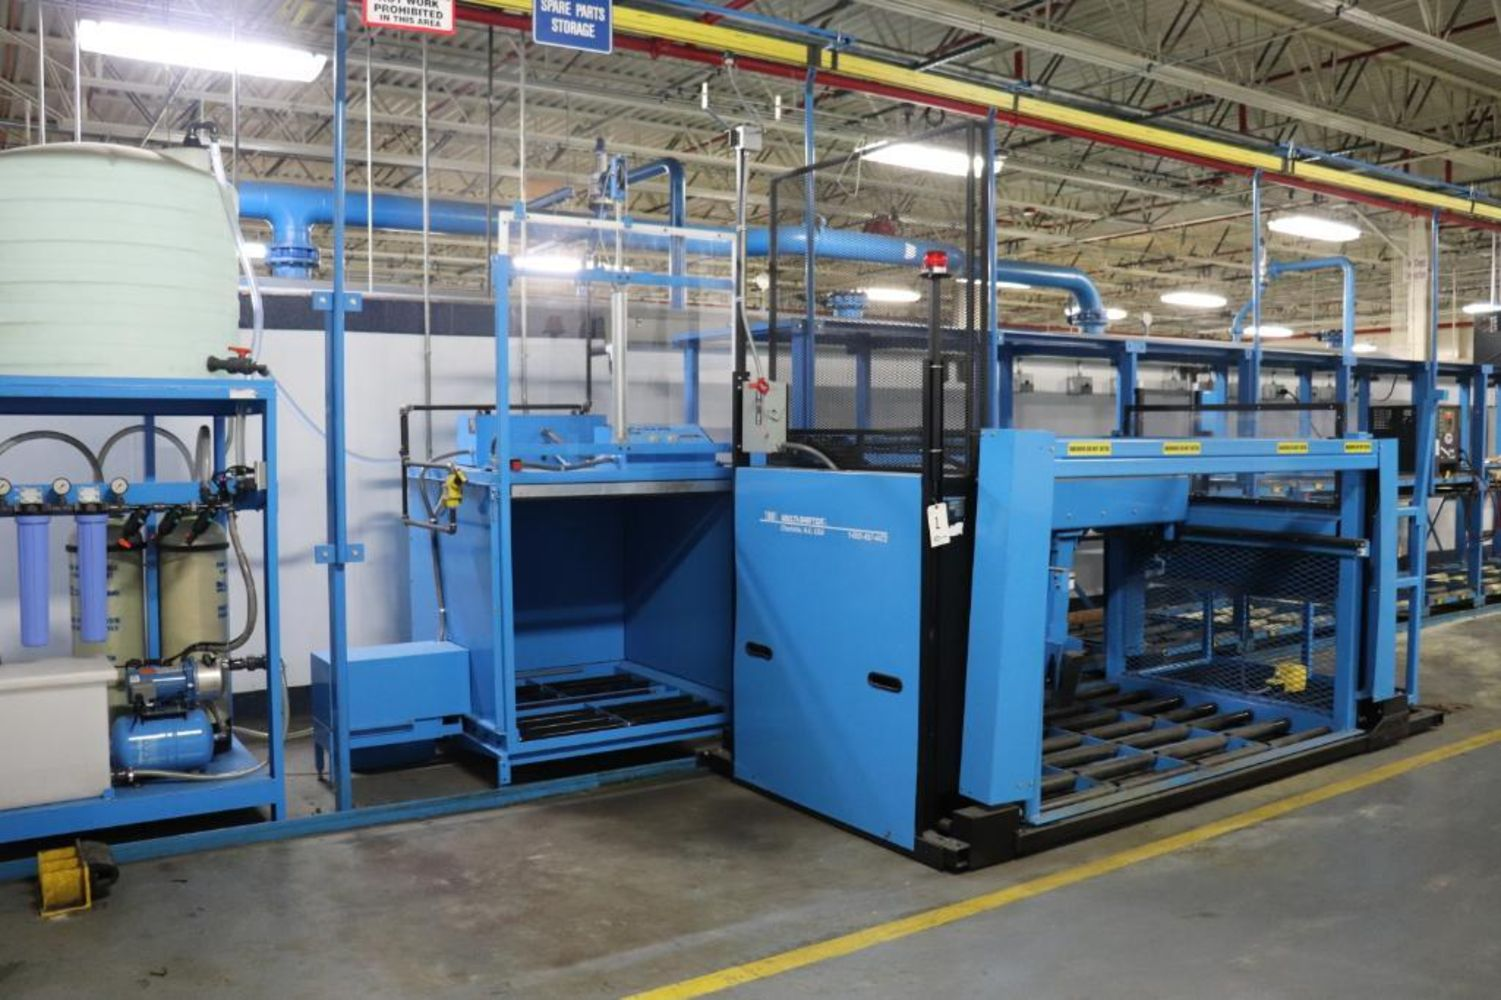 Large Plant Support & Battery MFG Equipment Auction